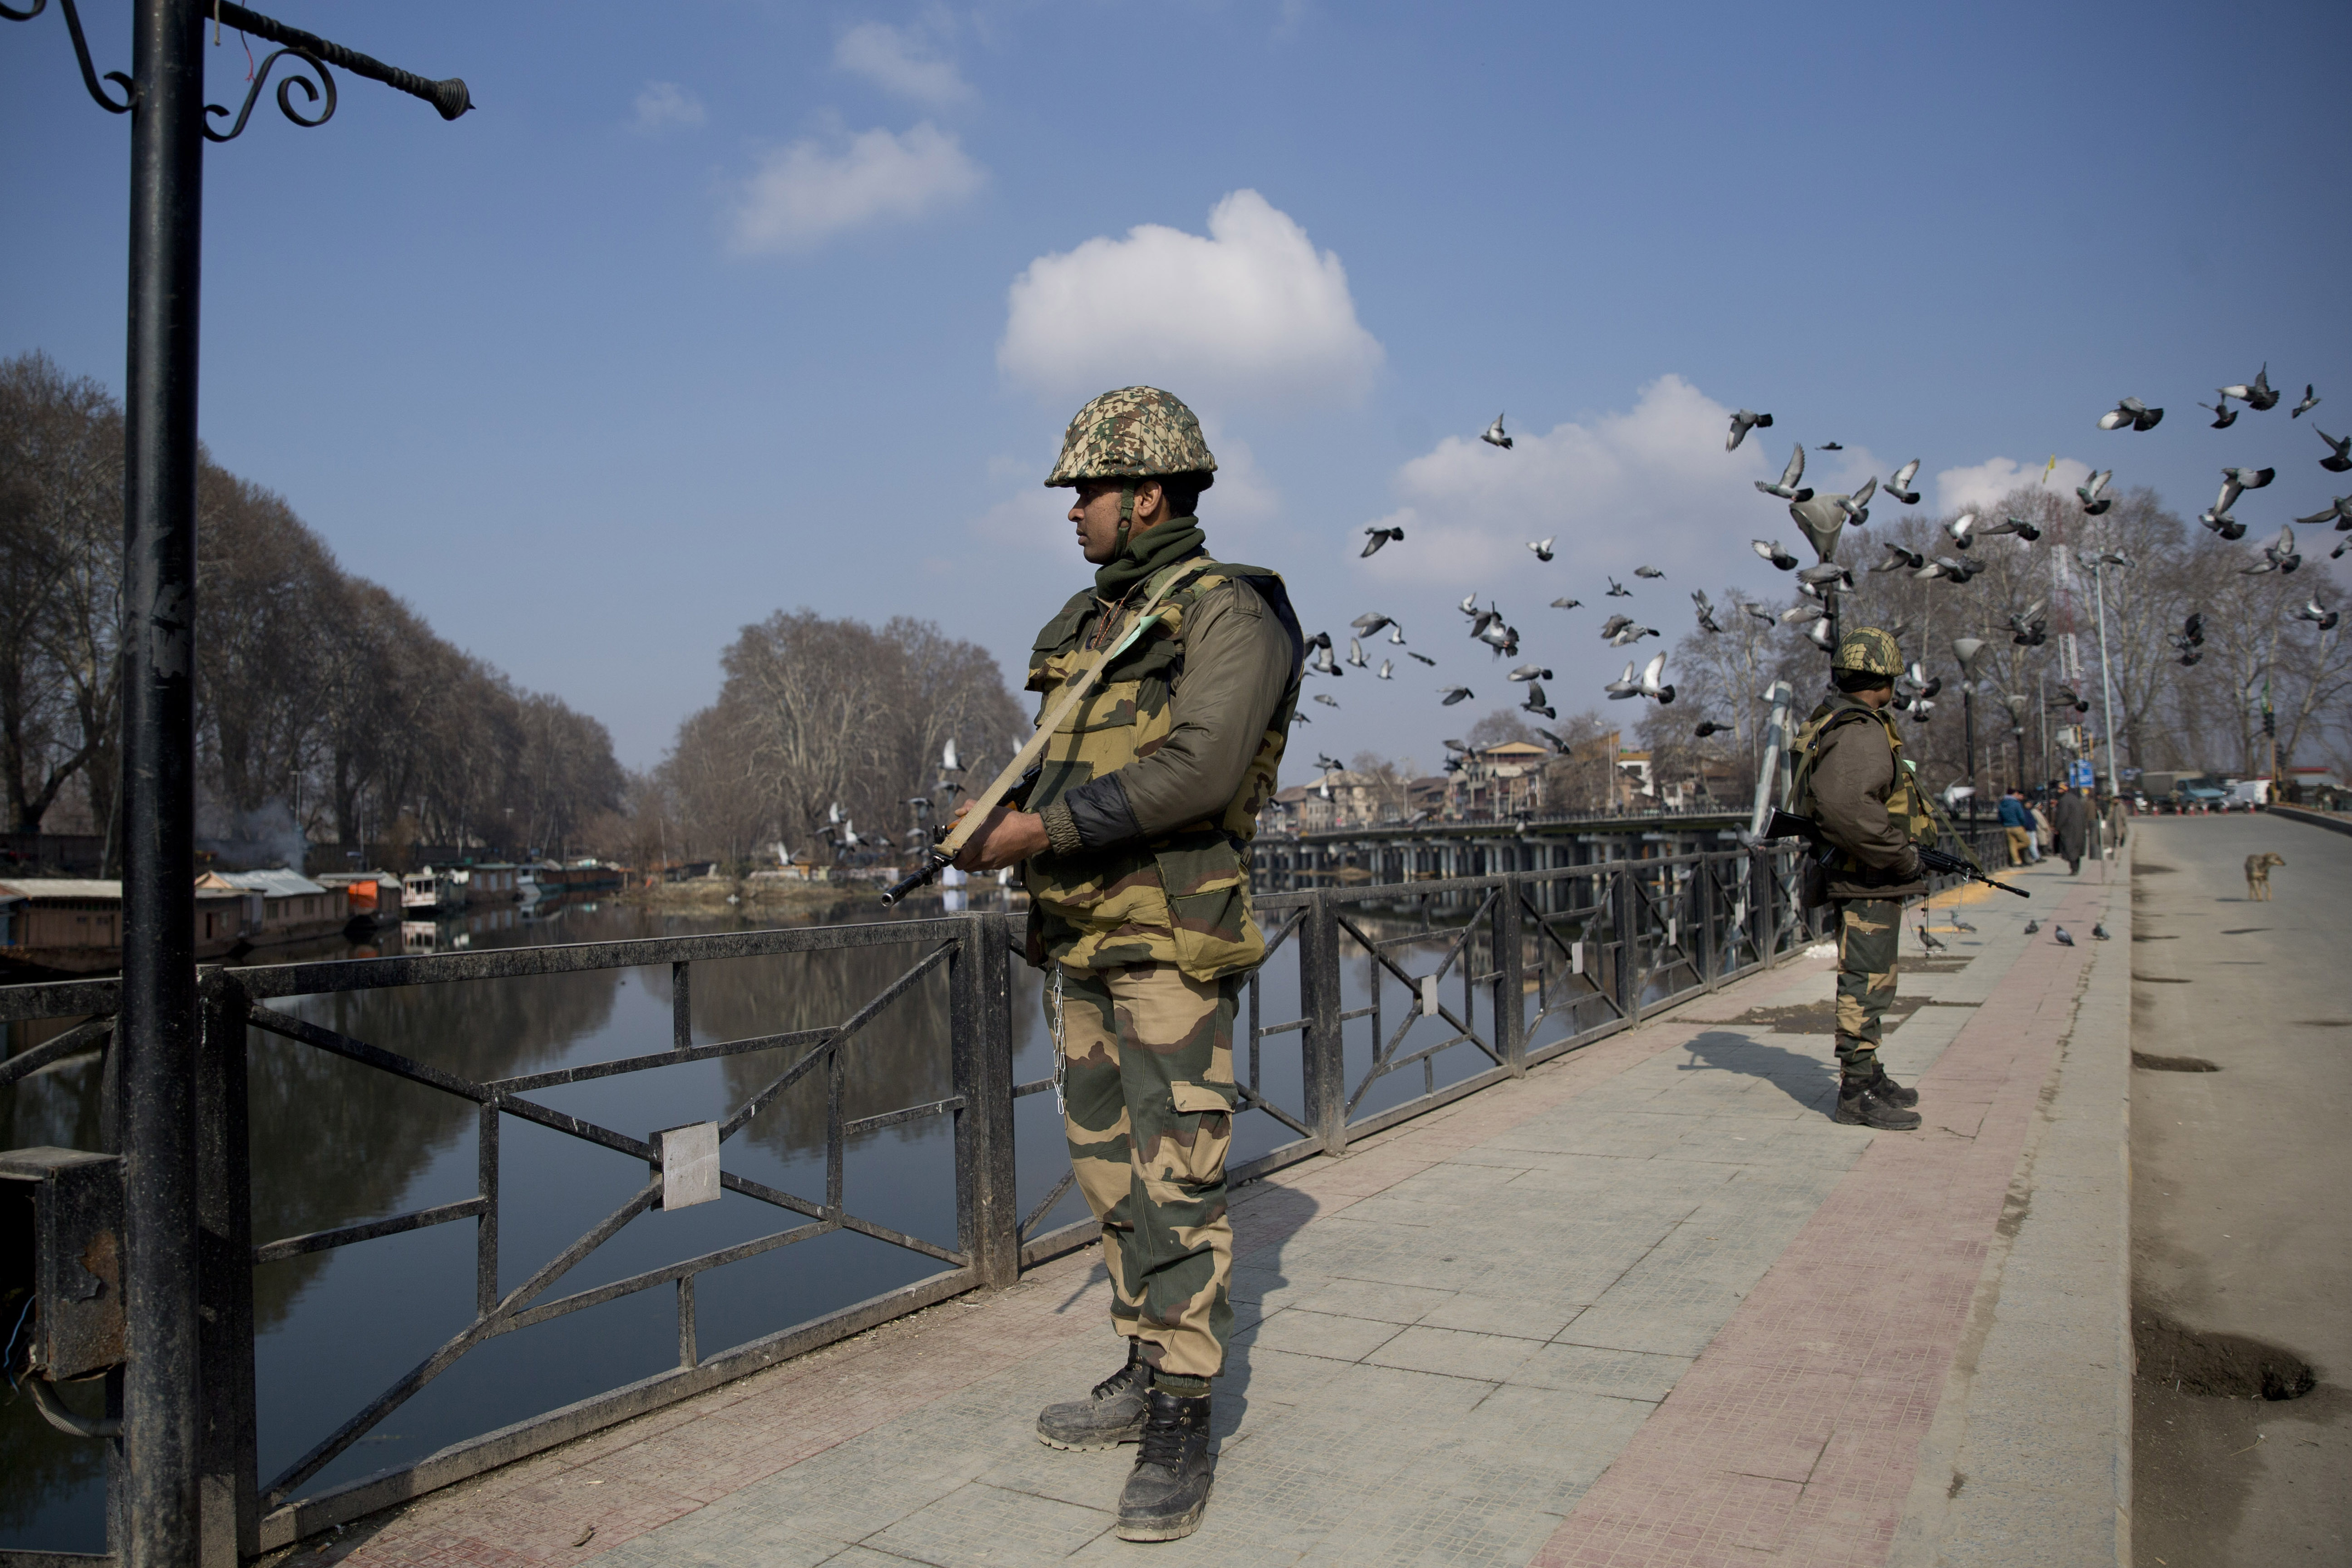 Indian paramilitary soldiers stand guard on a deserted street during a strike in Srinagar, Indian controlled Kashmir - AP